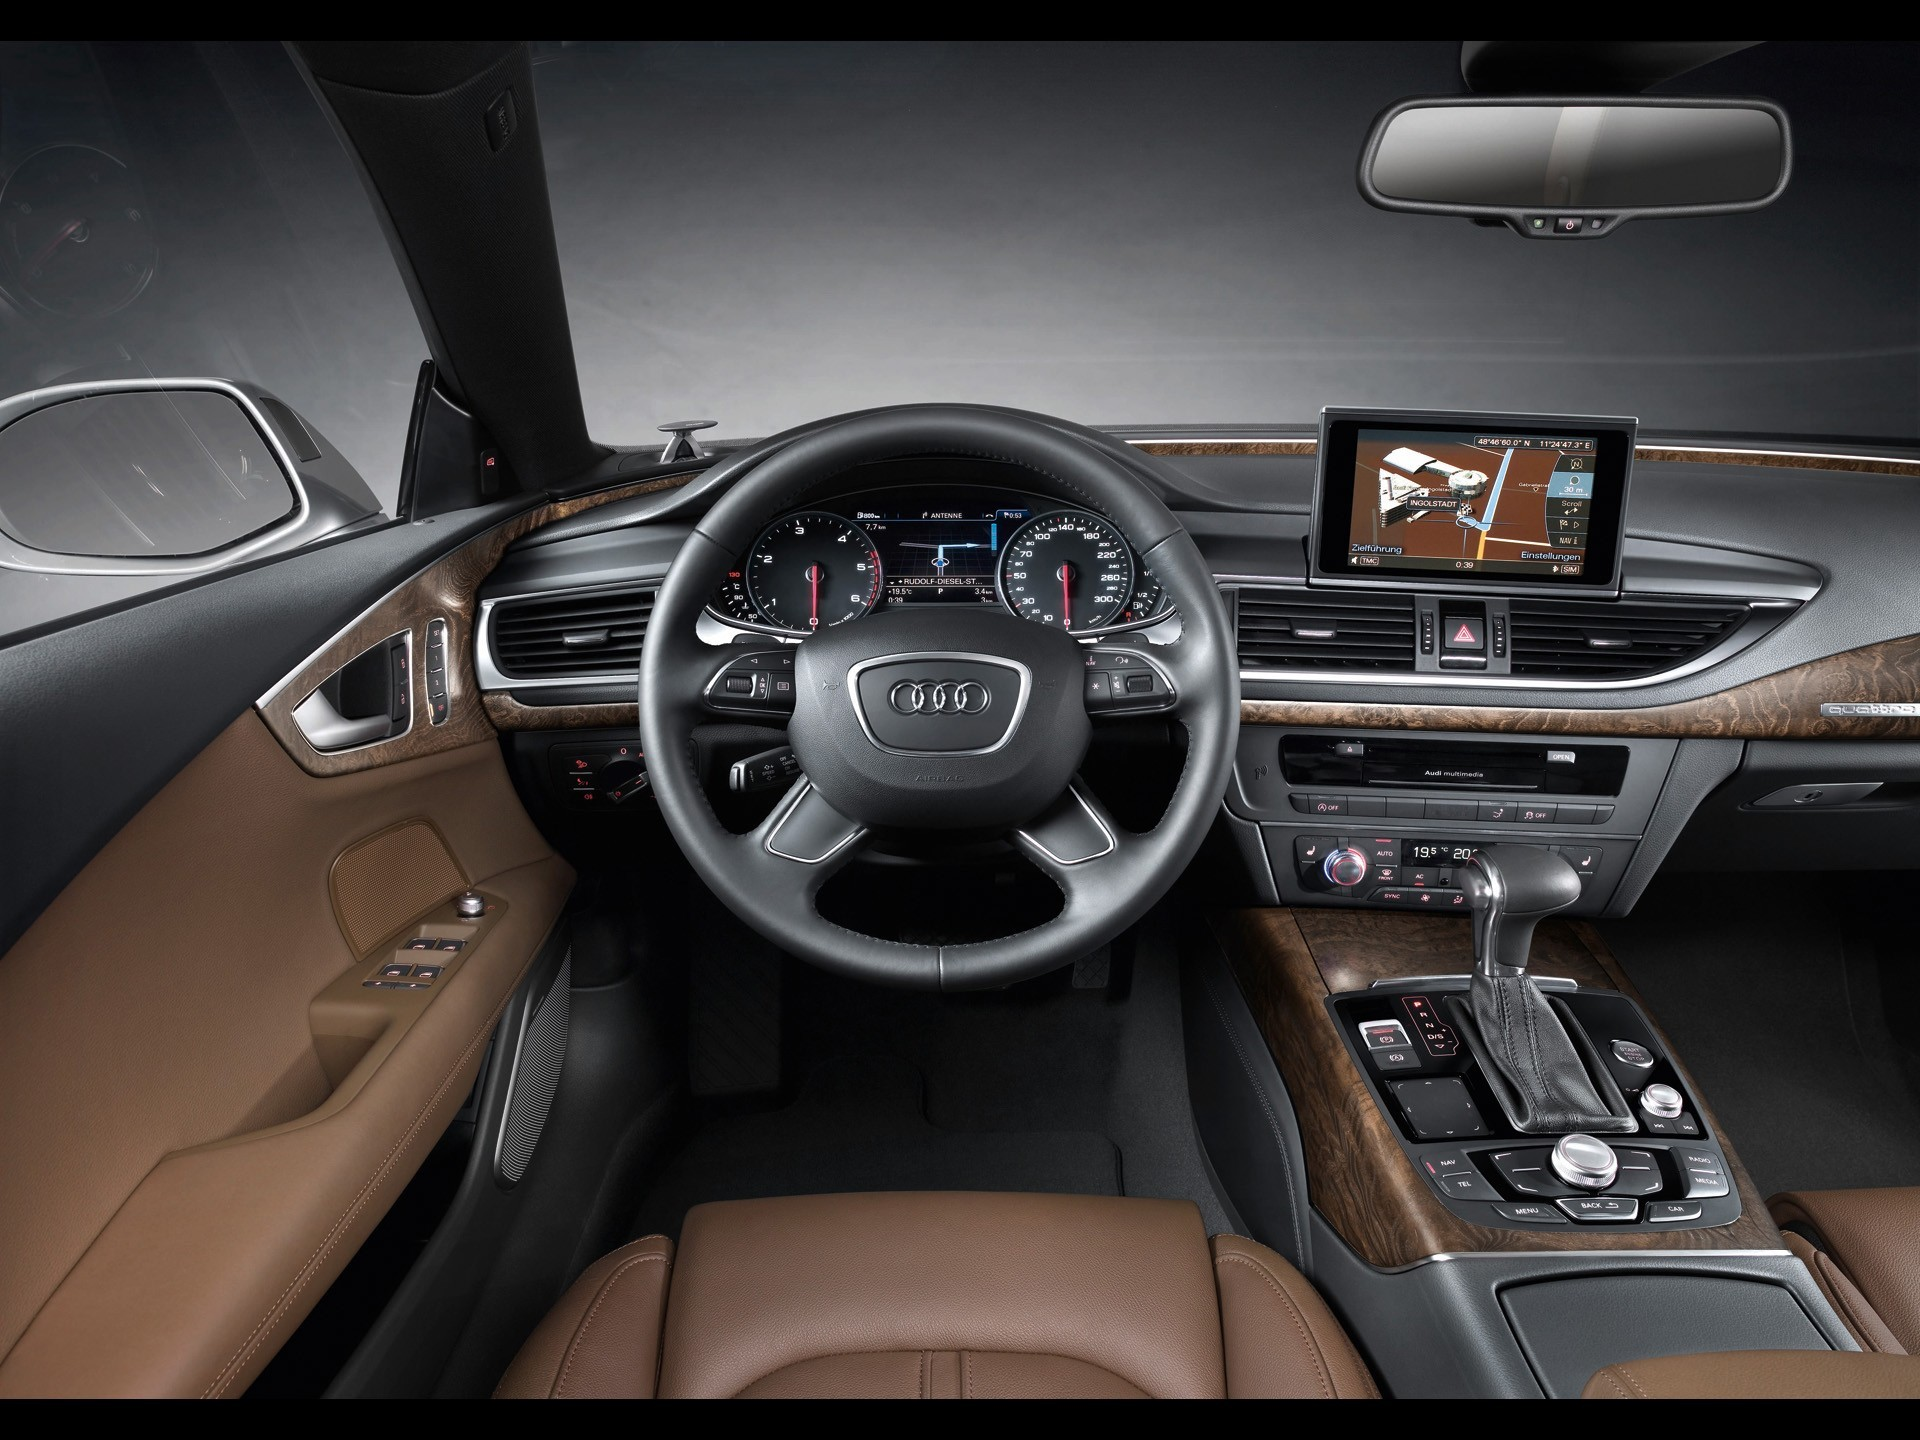 cars vehicles dashboards audi